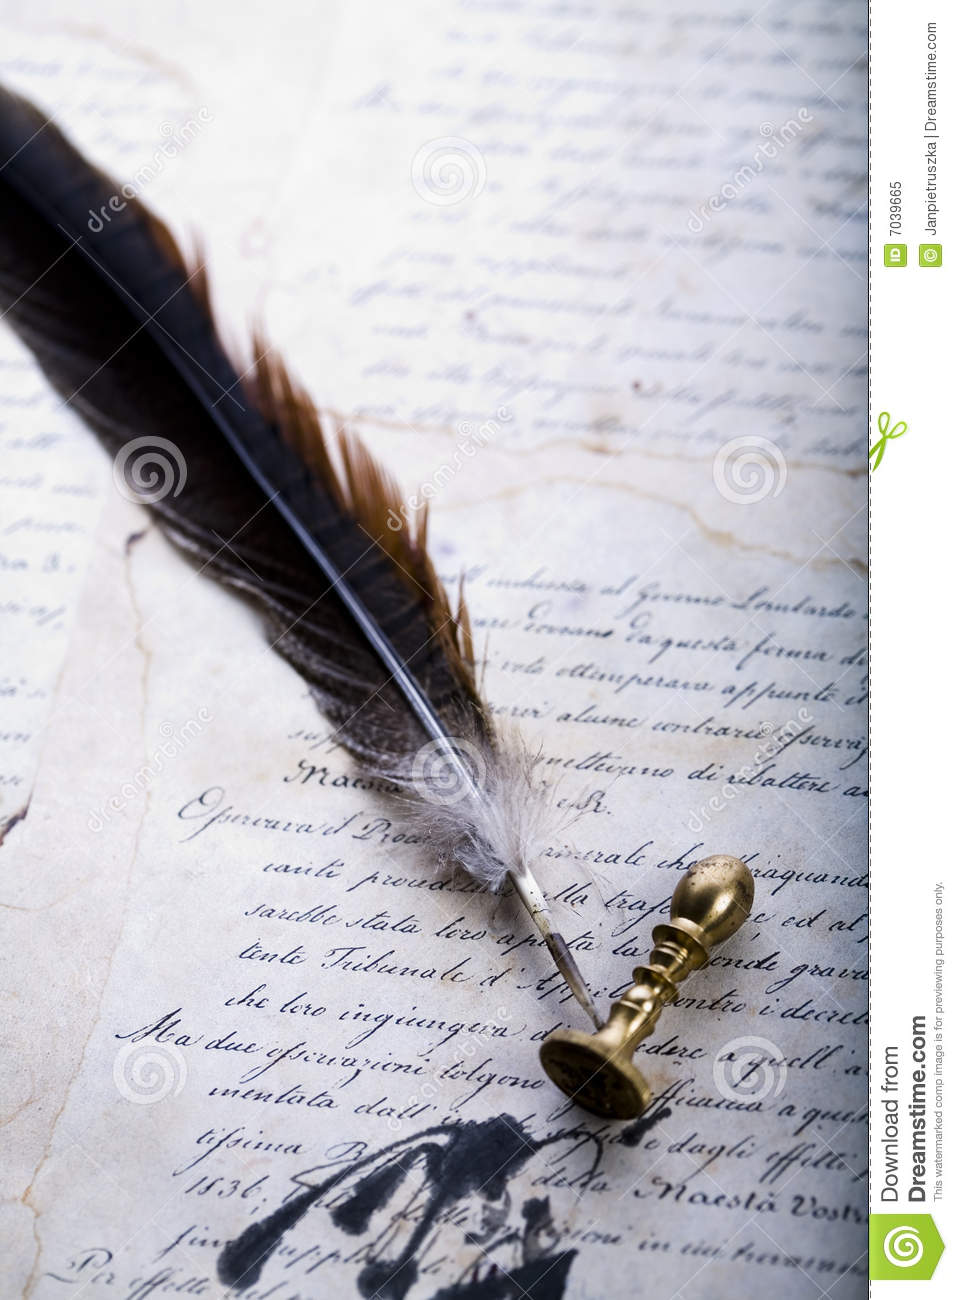 A stepbystep guide to writing a research paper from